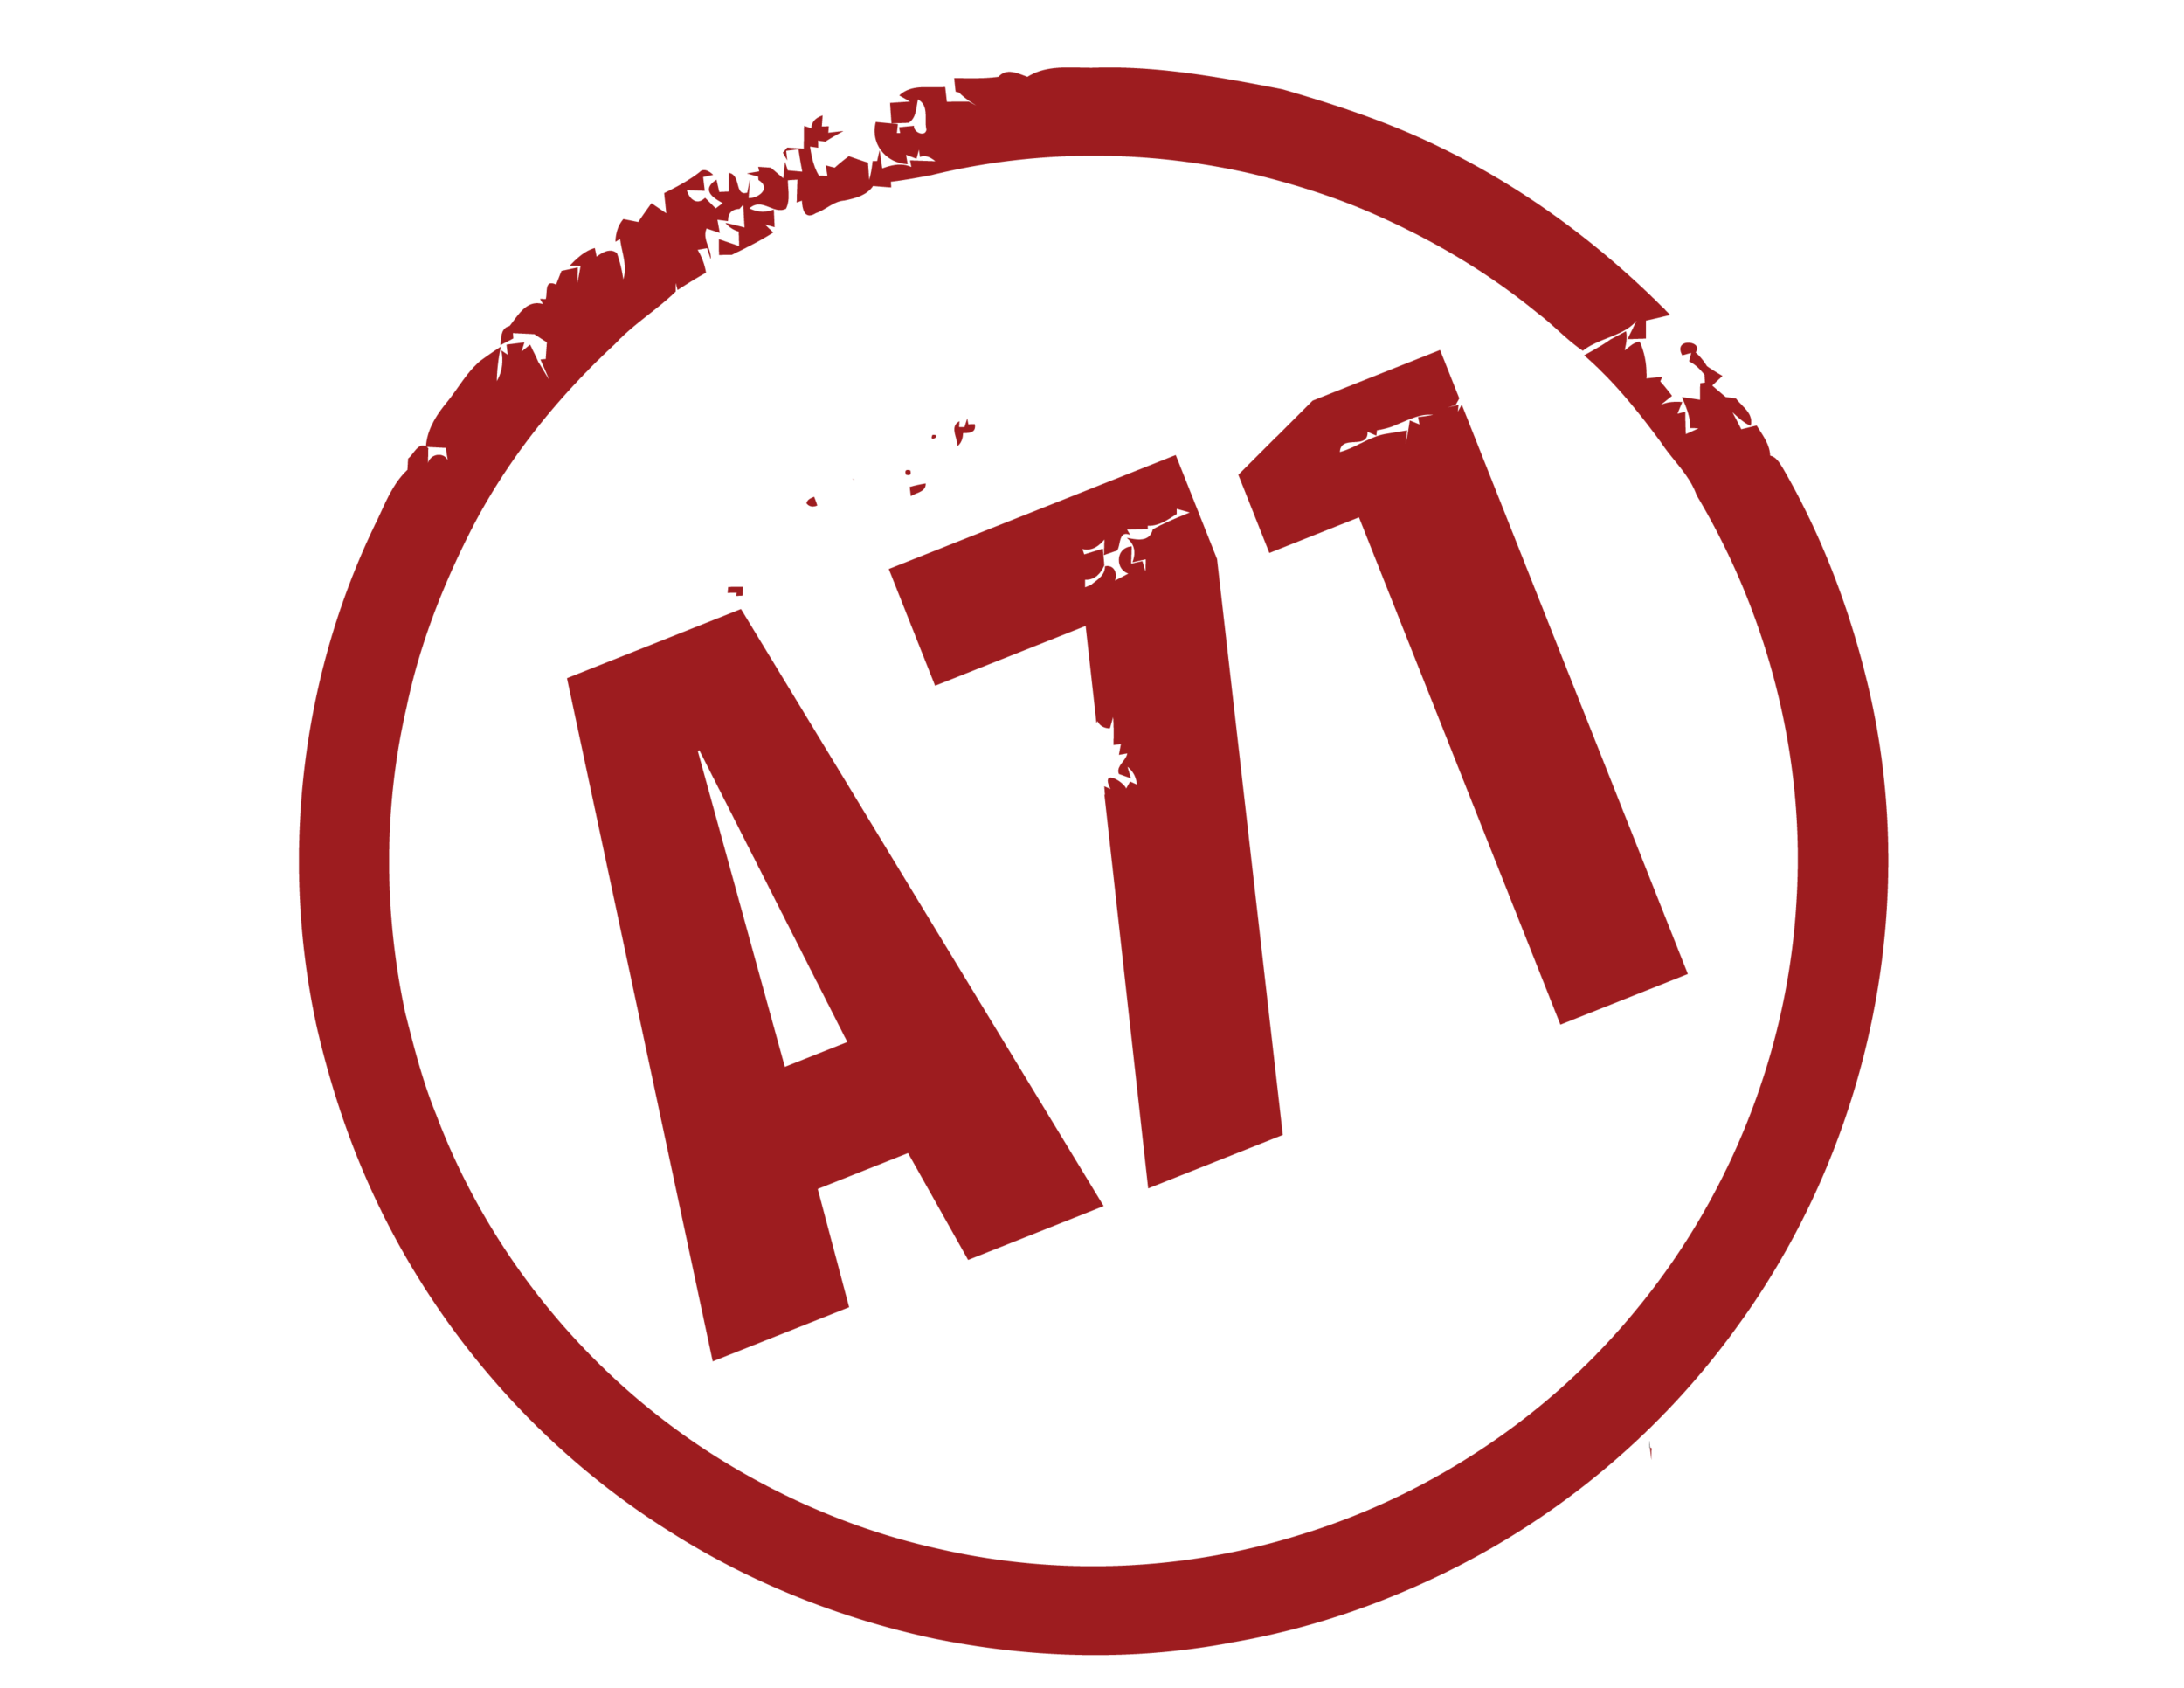 A71_LOGO-RED.png